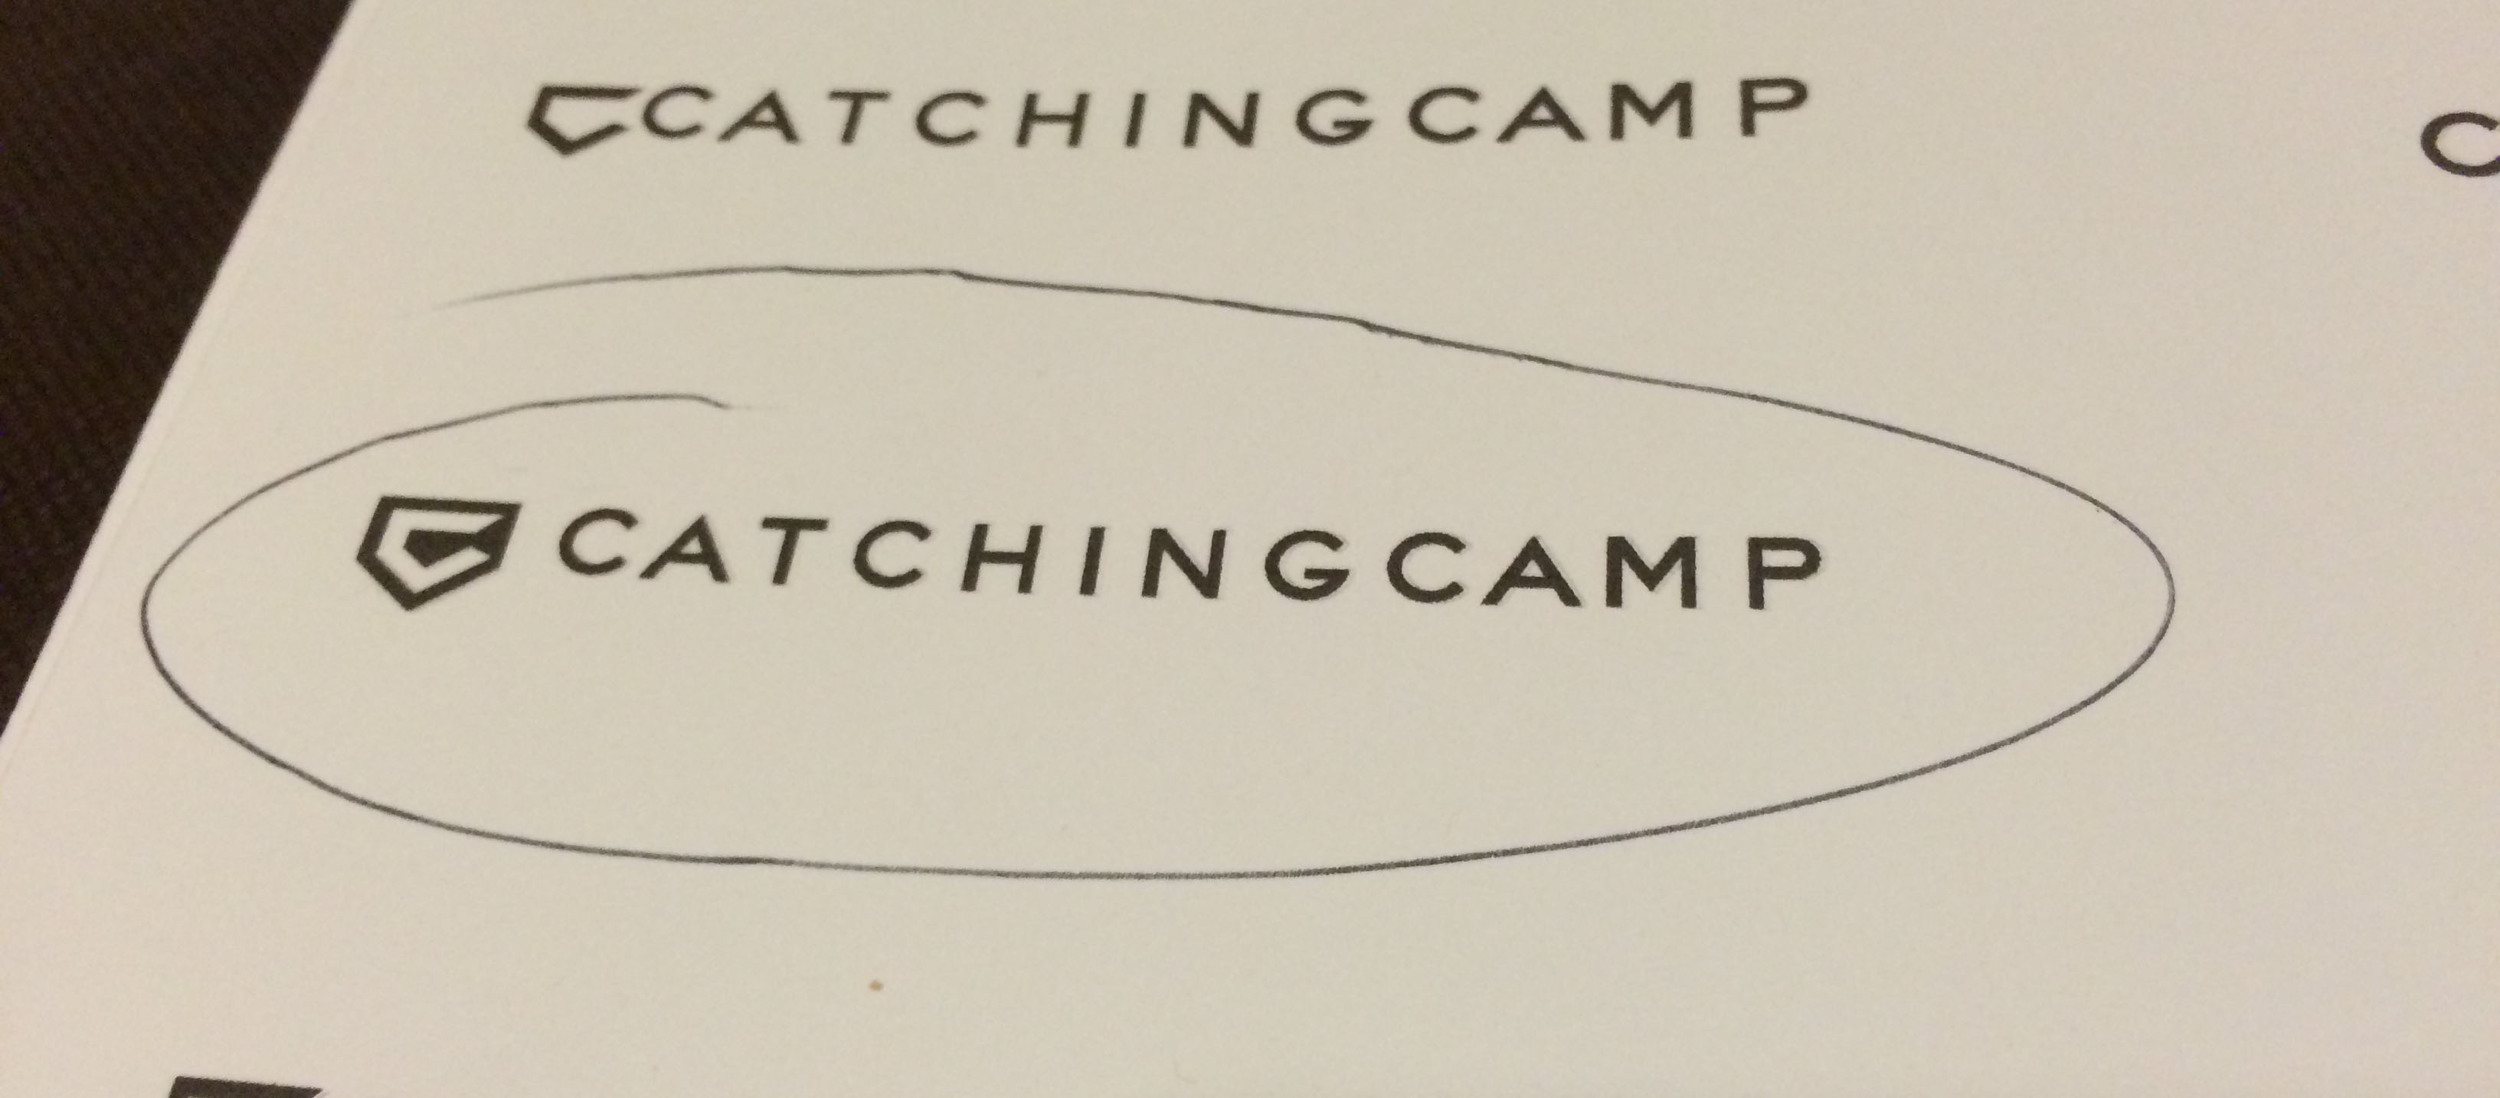 After many revisions we finally settled on the new mark that would set the pace for the future of the Catching Camp